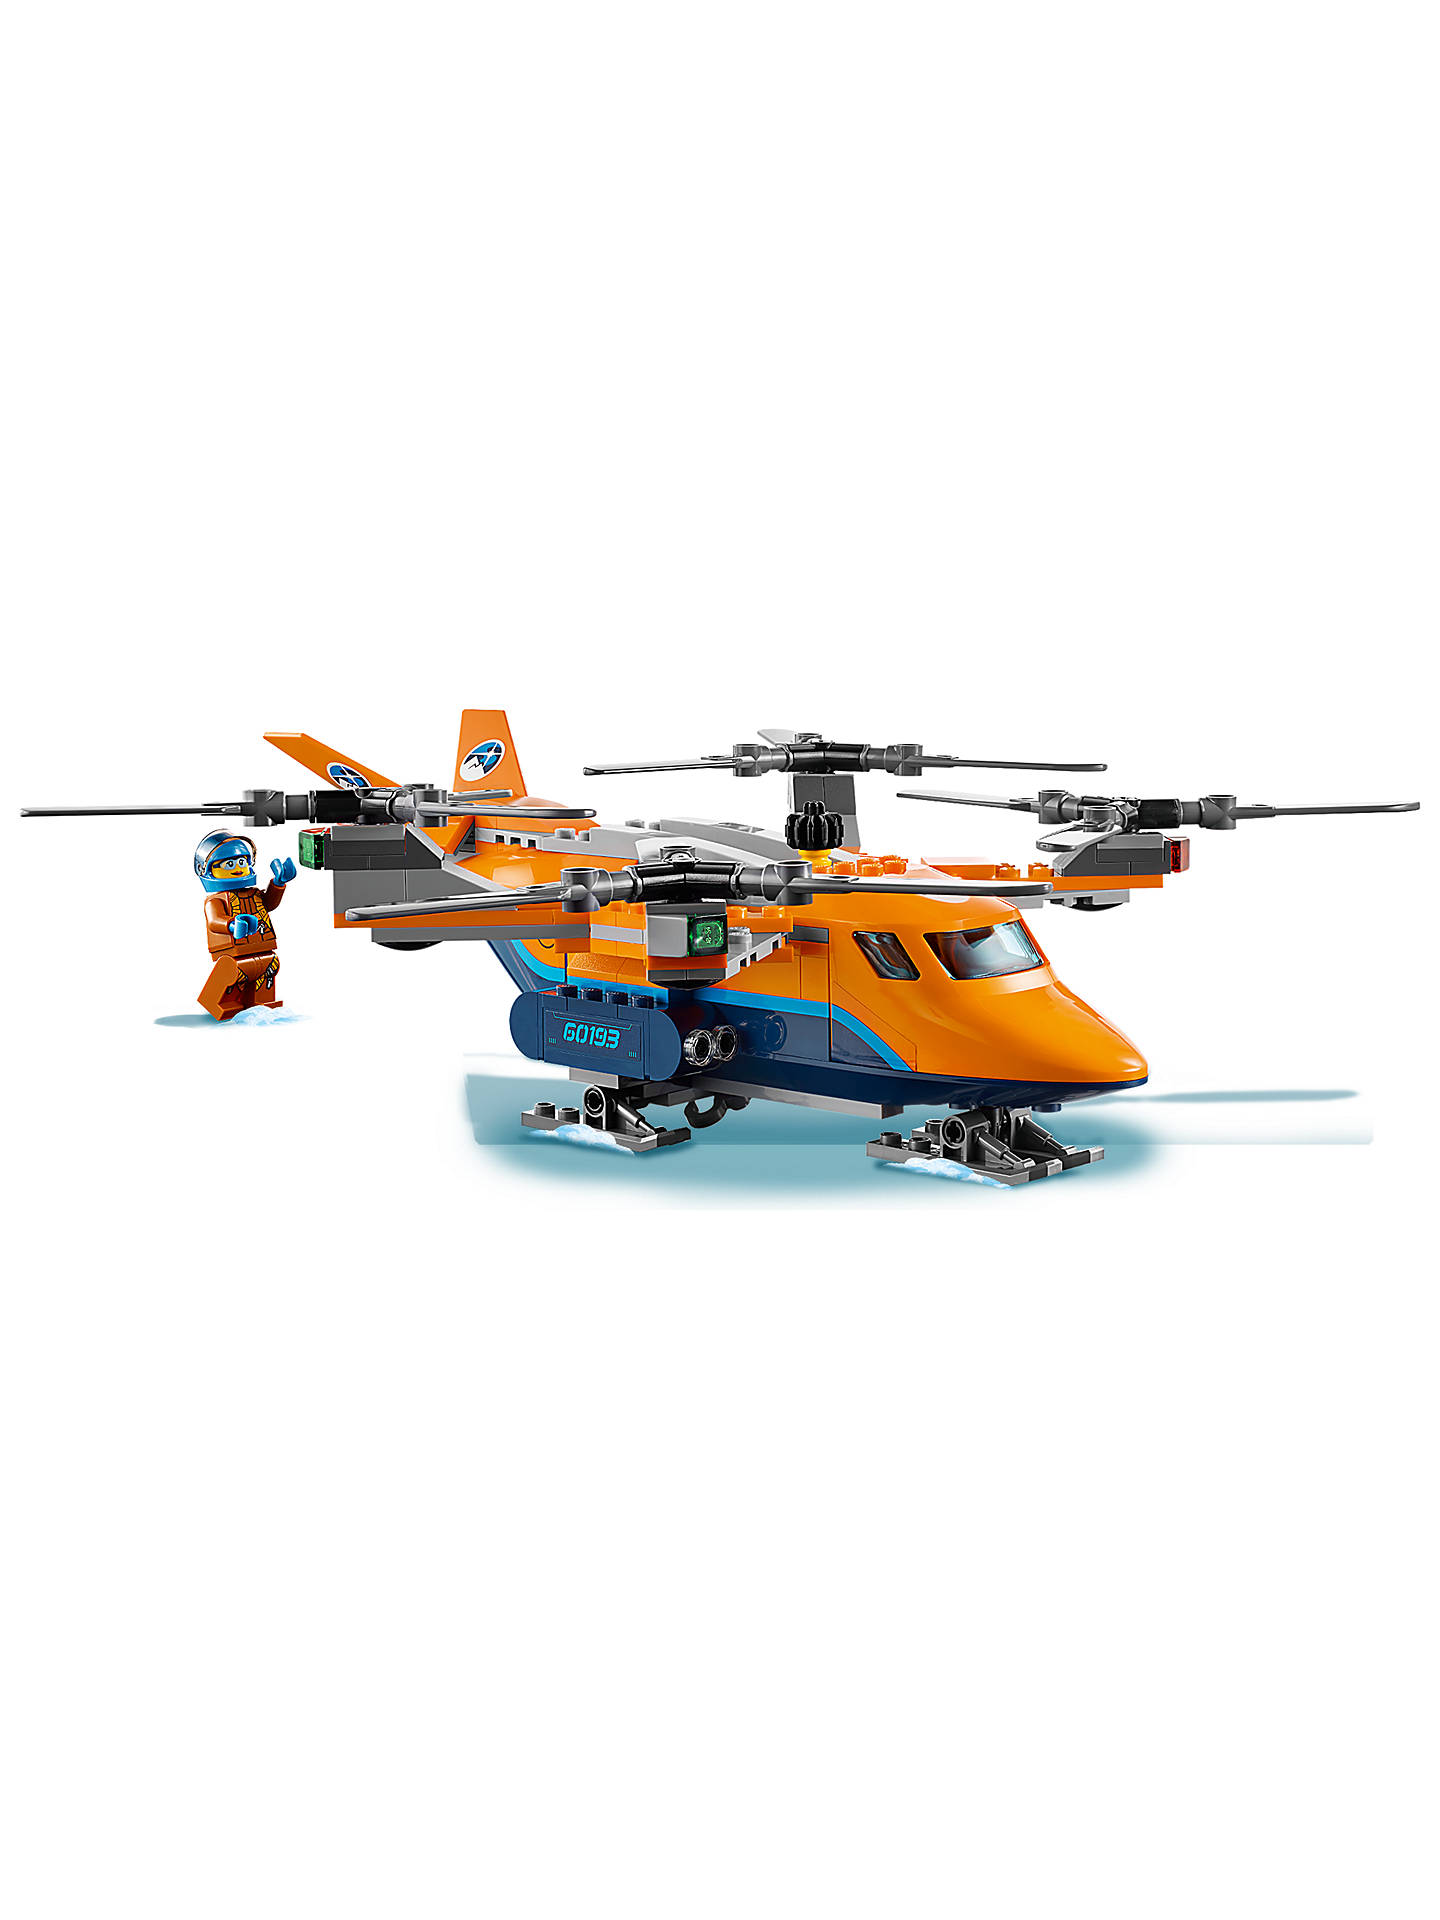 LEGO City 60193 Arctic Expedition Air Transport